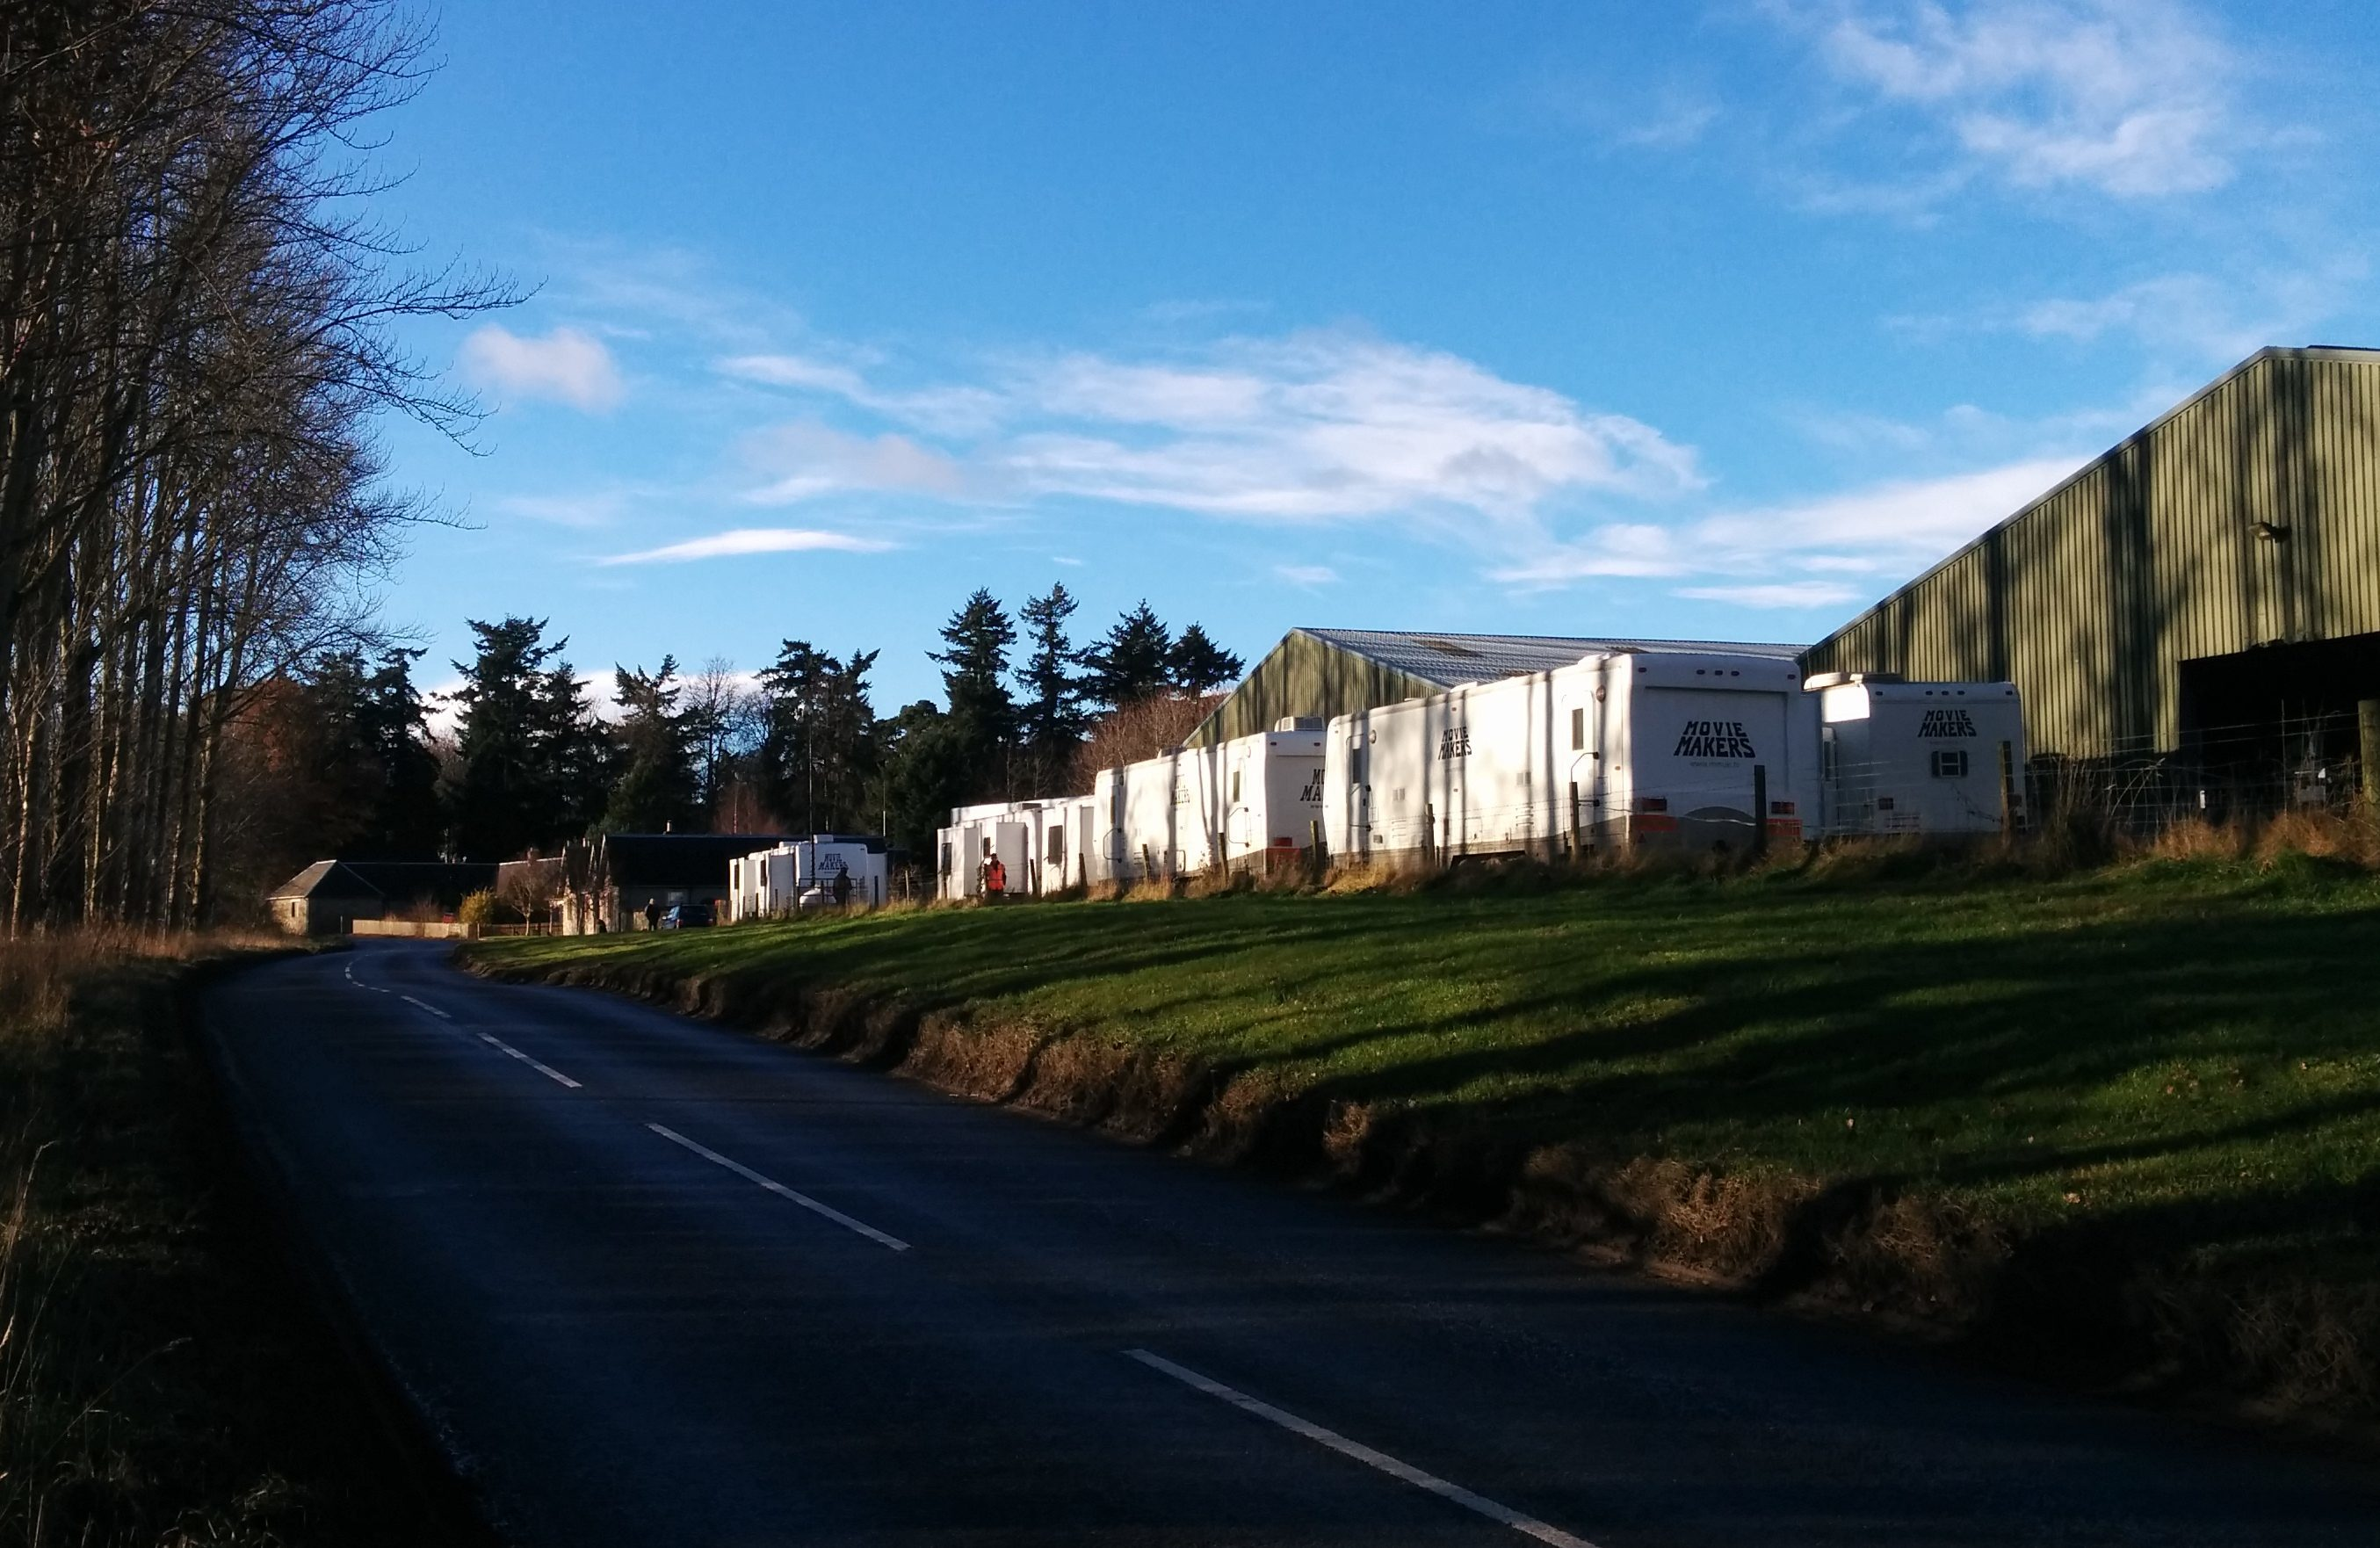 The film location units on the Stanley to Blairgowrie road near Ballathie.